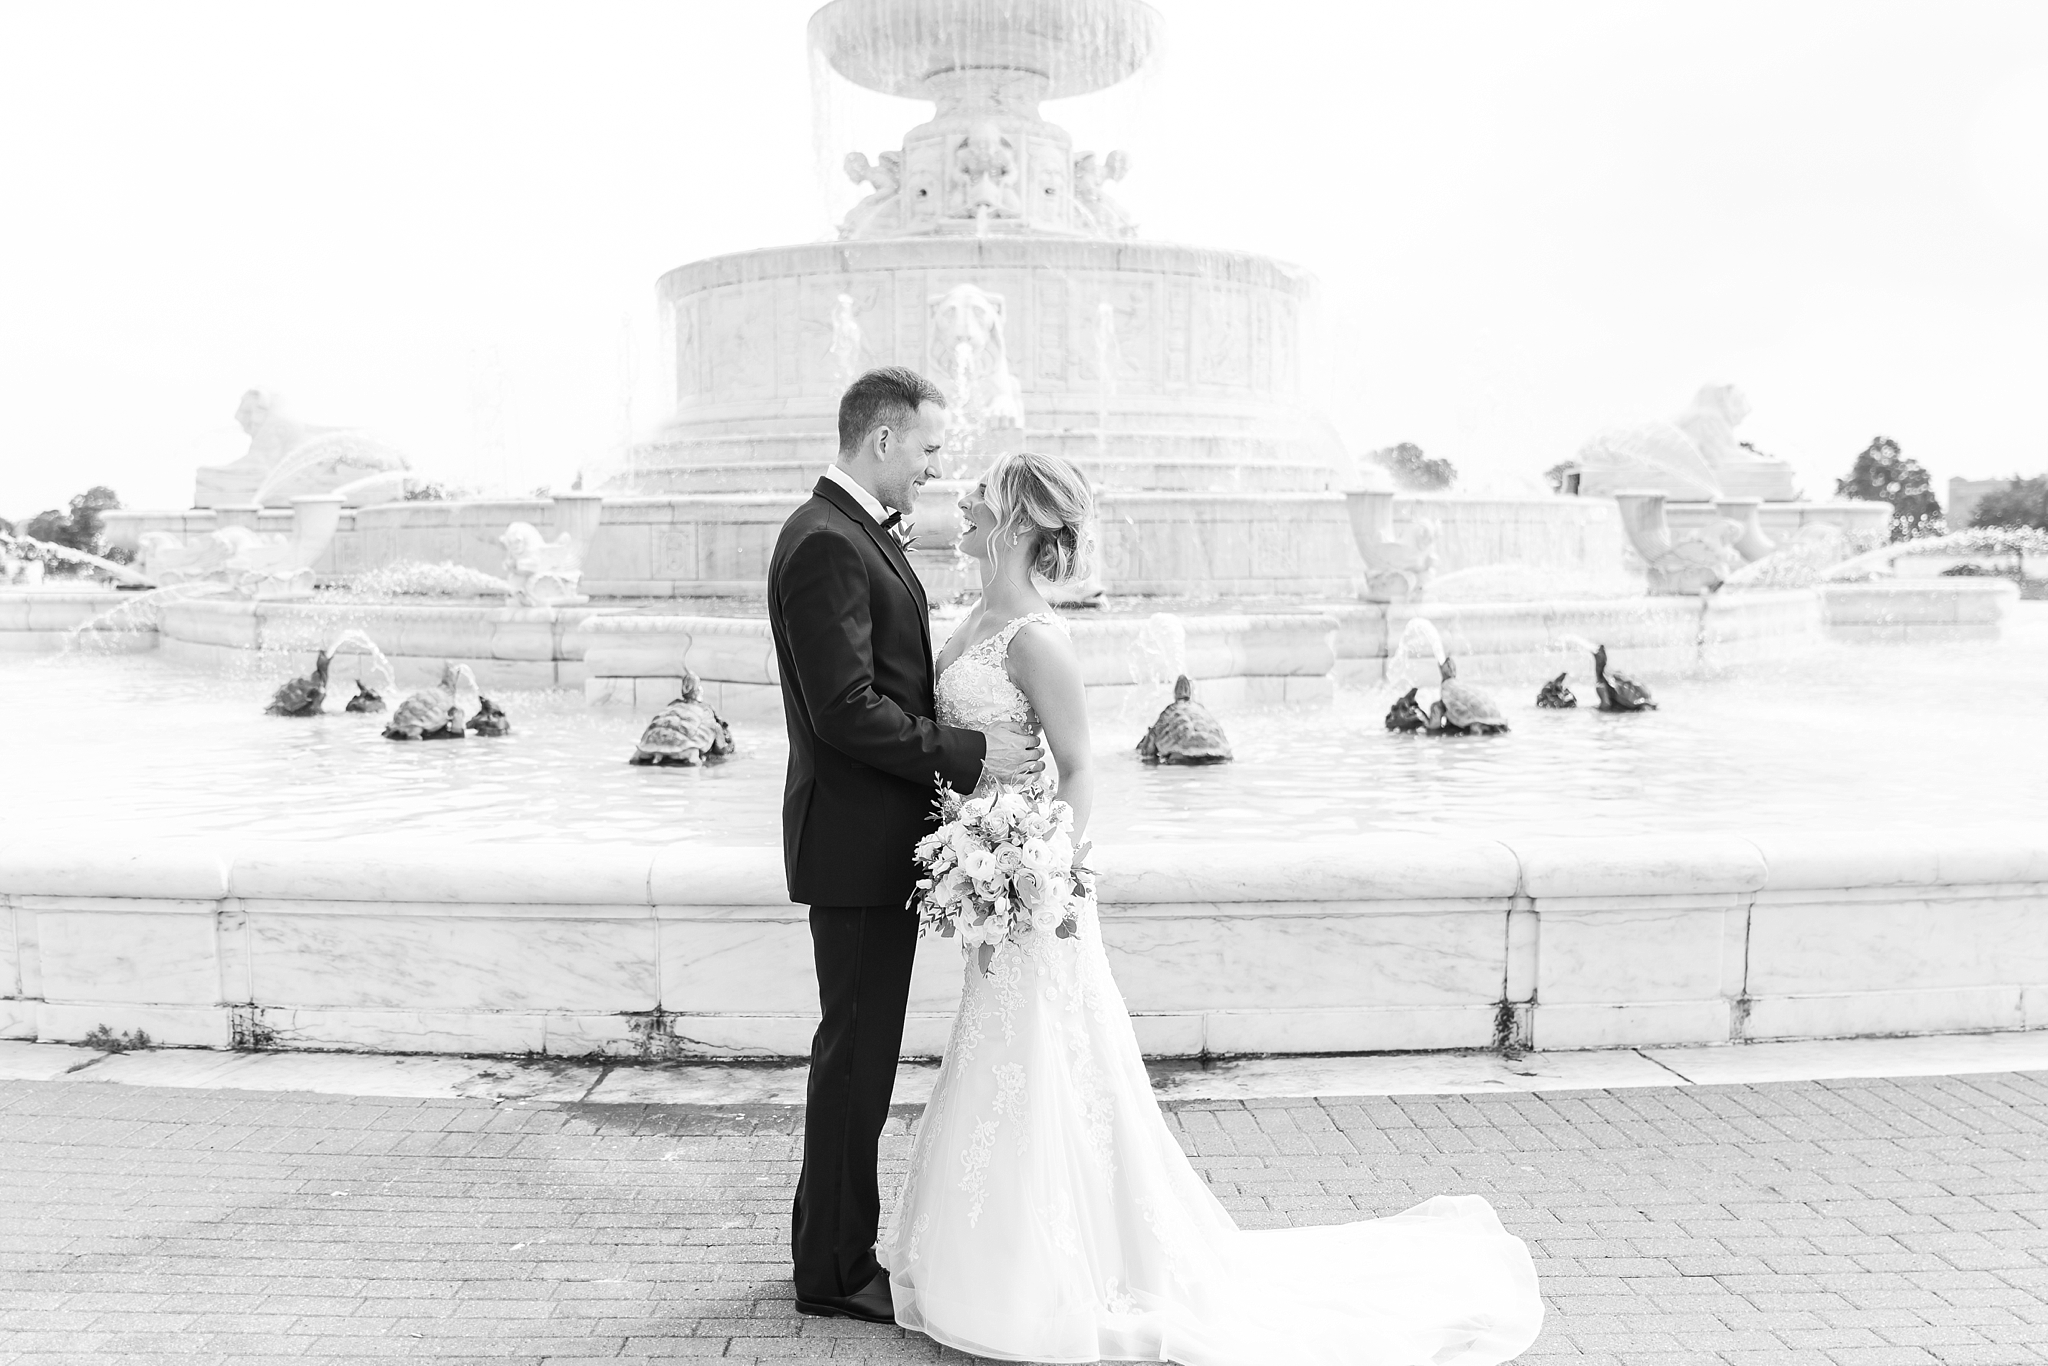 candid-romantic-wedding-photos-at-the-masonic-temple-belle-isle-detroit-institute-of-arts-in-detroit-michigan-by-courtney-carolyn-photography_0045.jpg